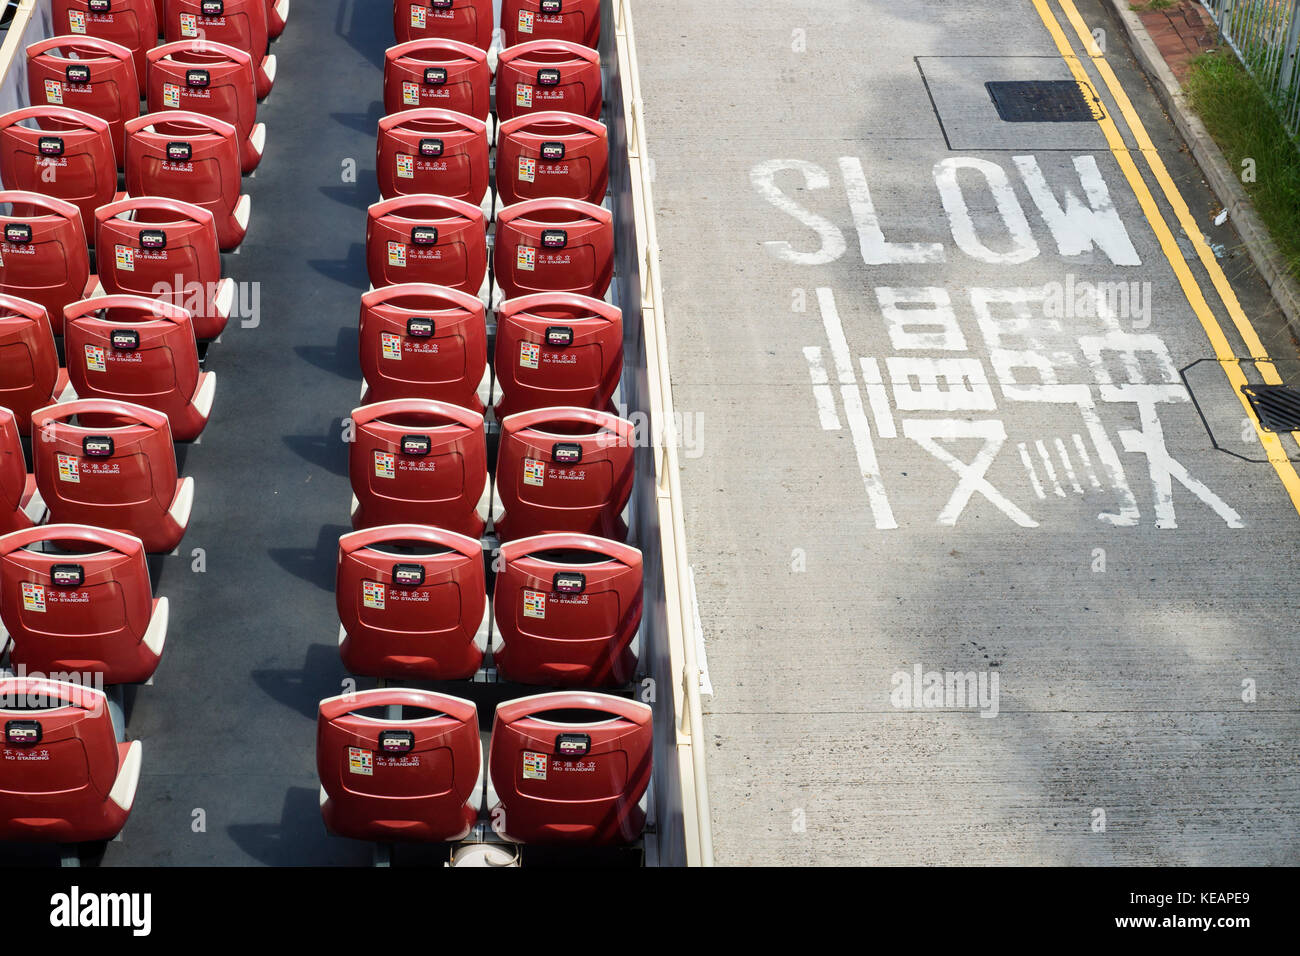 Open double decker bus with red chairs from high angle view with roadsign slow, Hong Kong, Asia - Stock Image